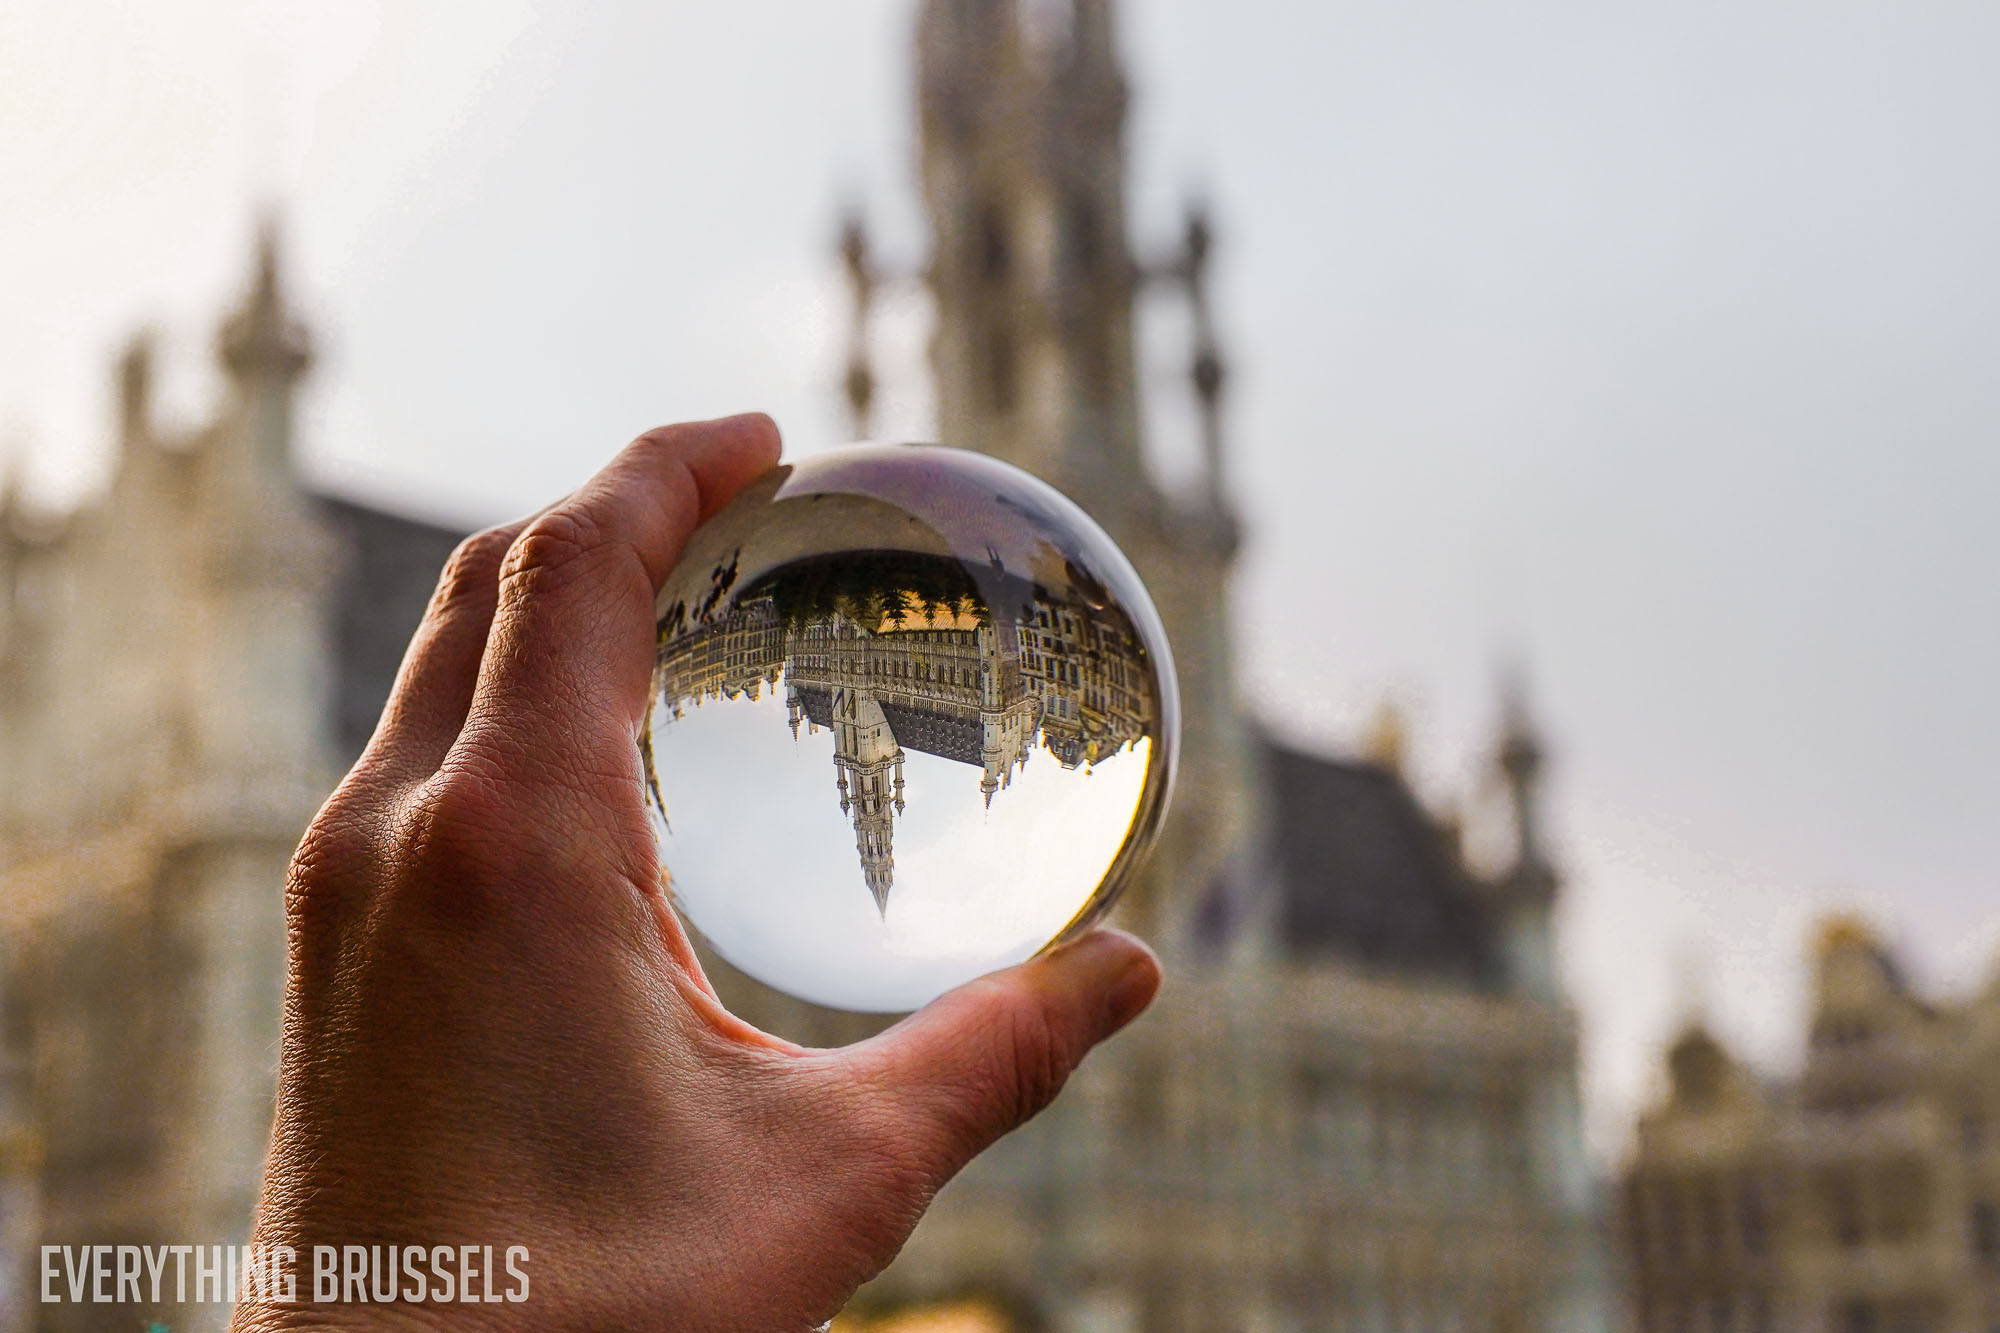 Grand Place, Hotel de Ville, through a lens ball